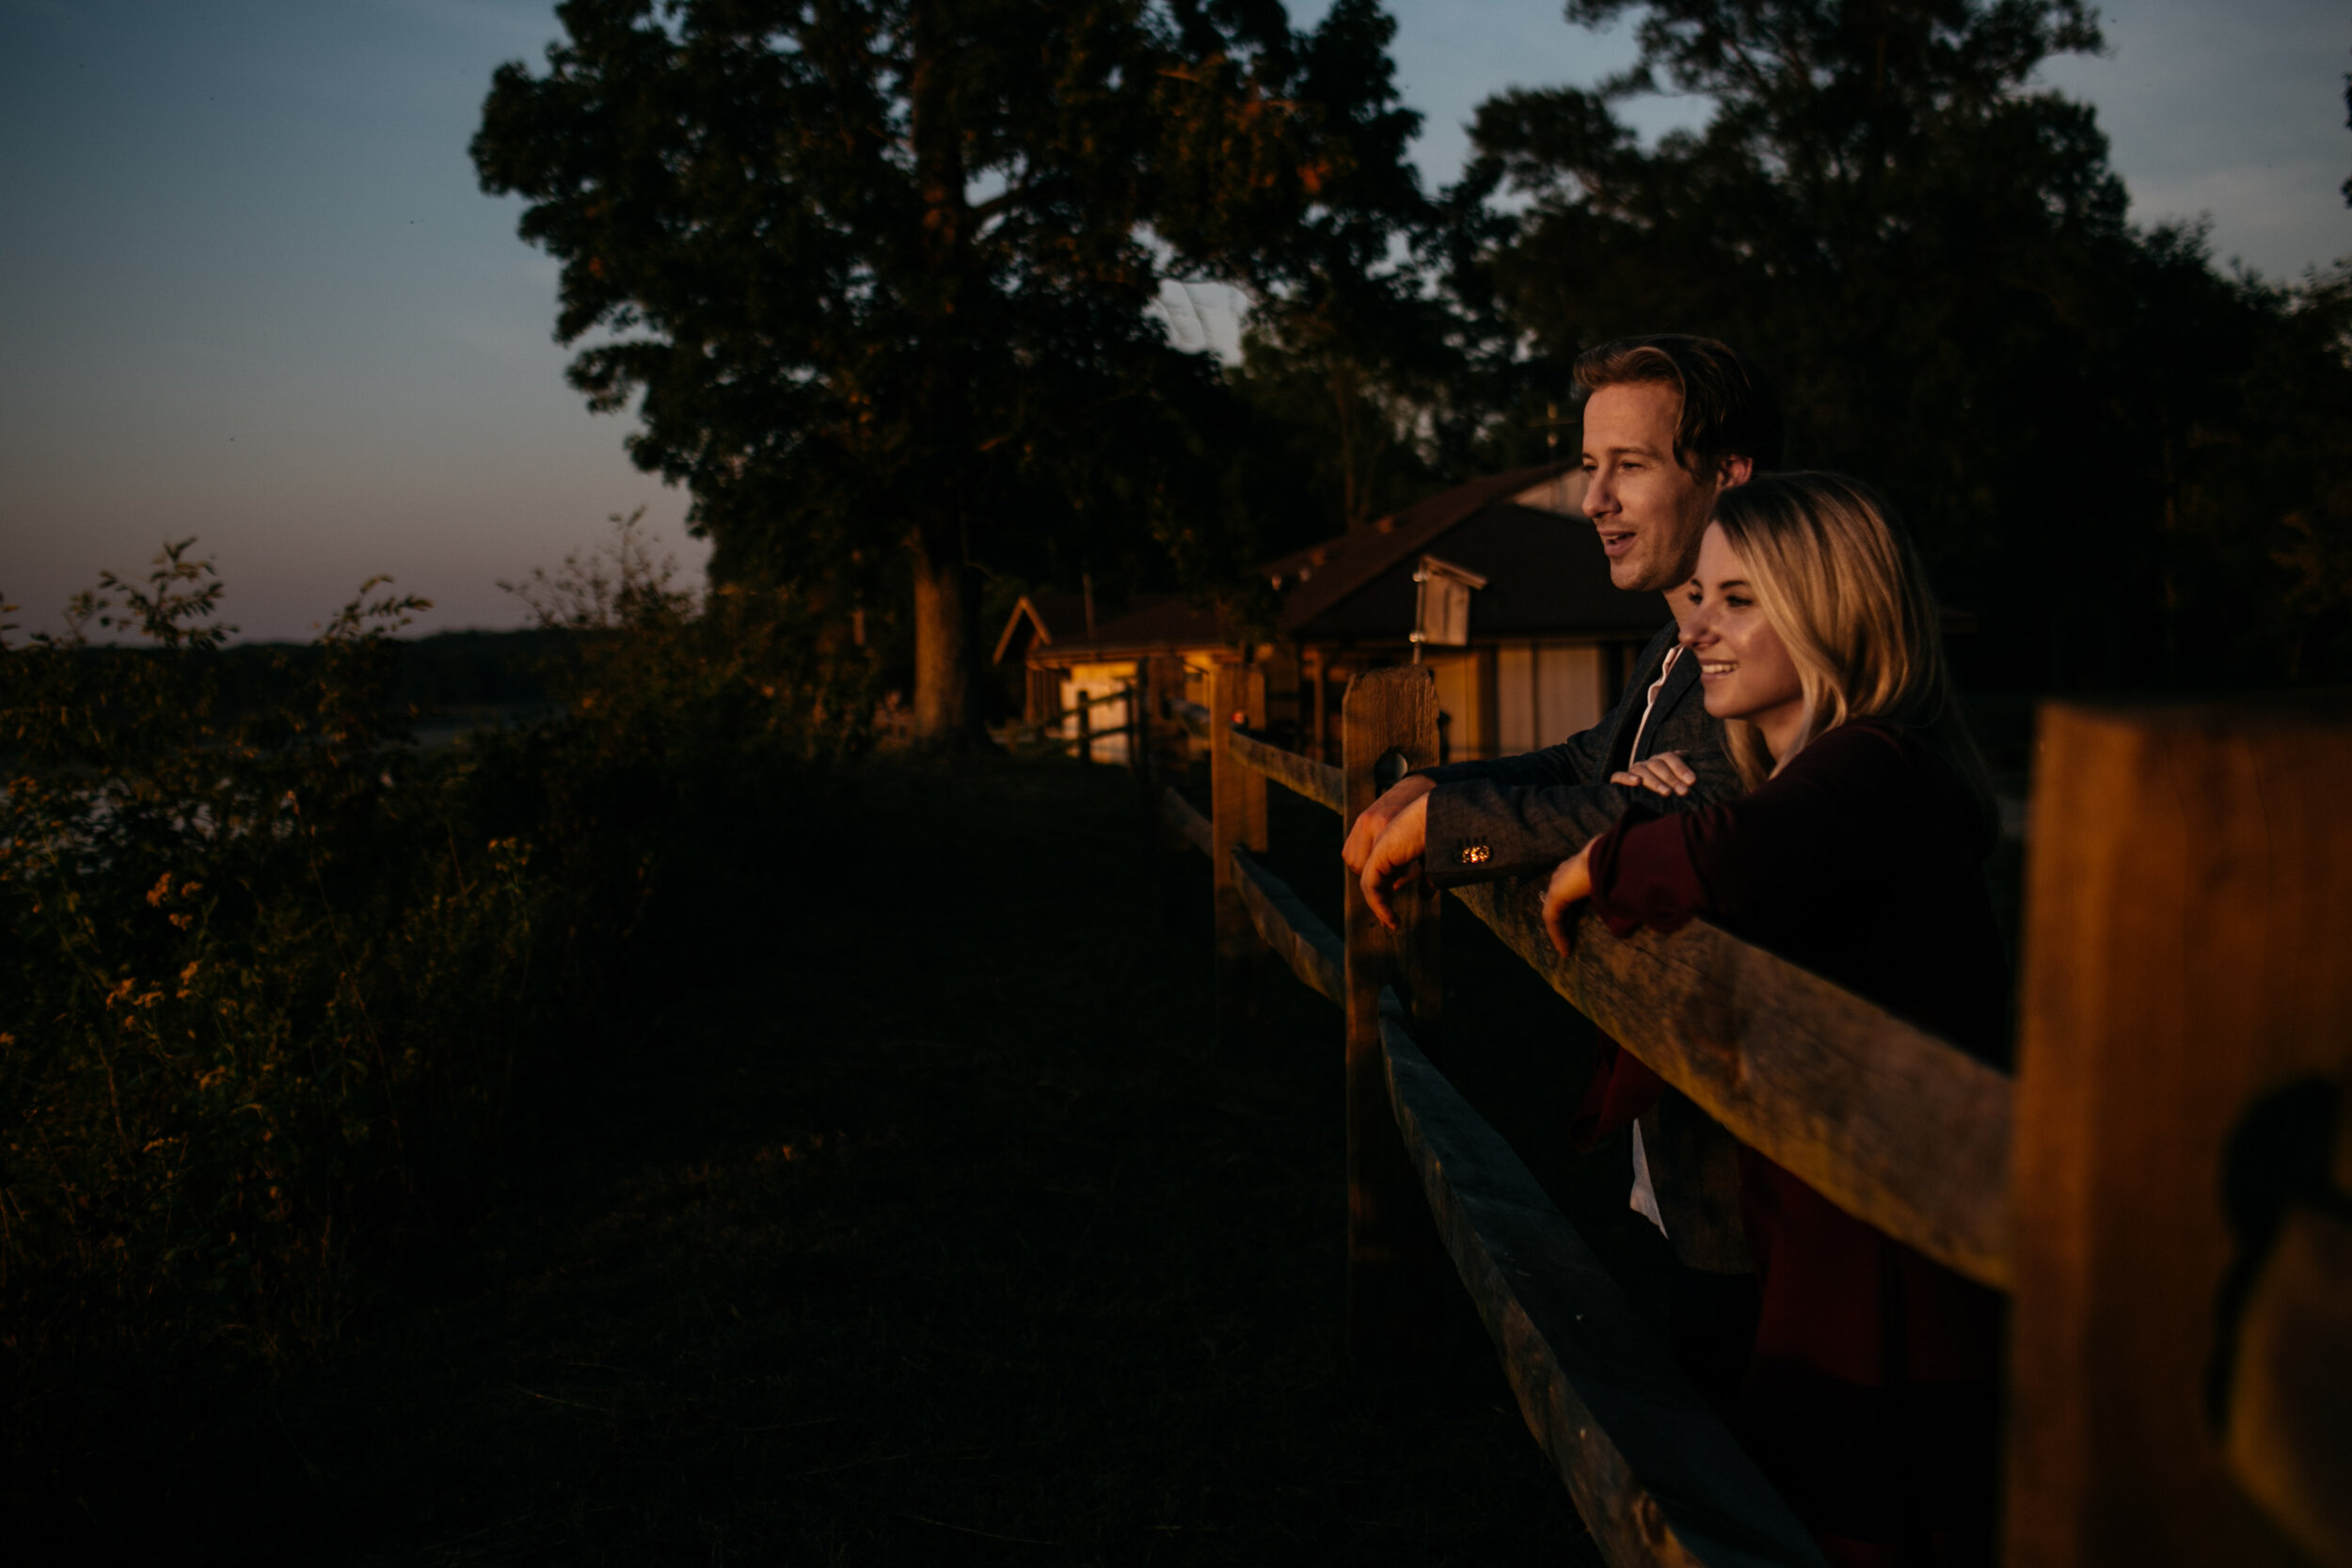 sasha_garth_engagement_mason_neck_state_park_summer_sunset_green_Forest-14.jpg